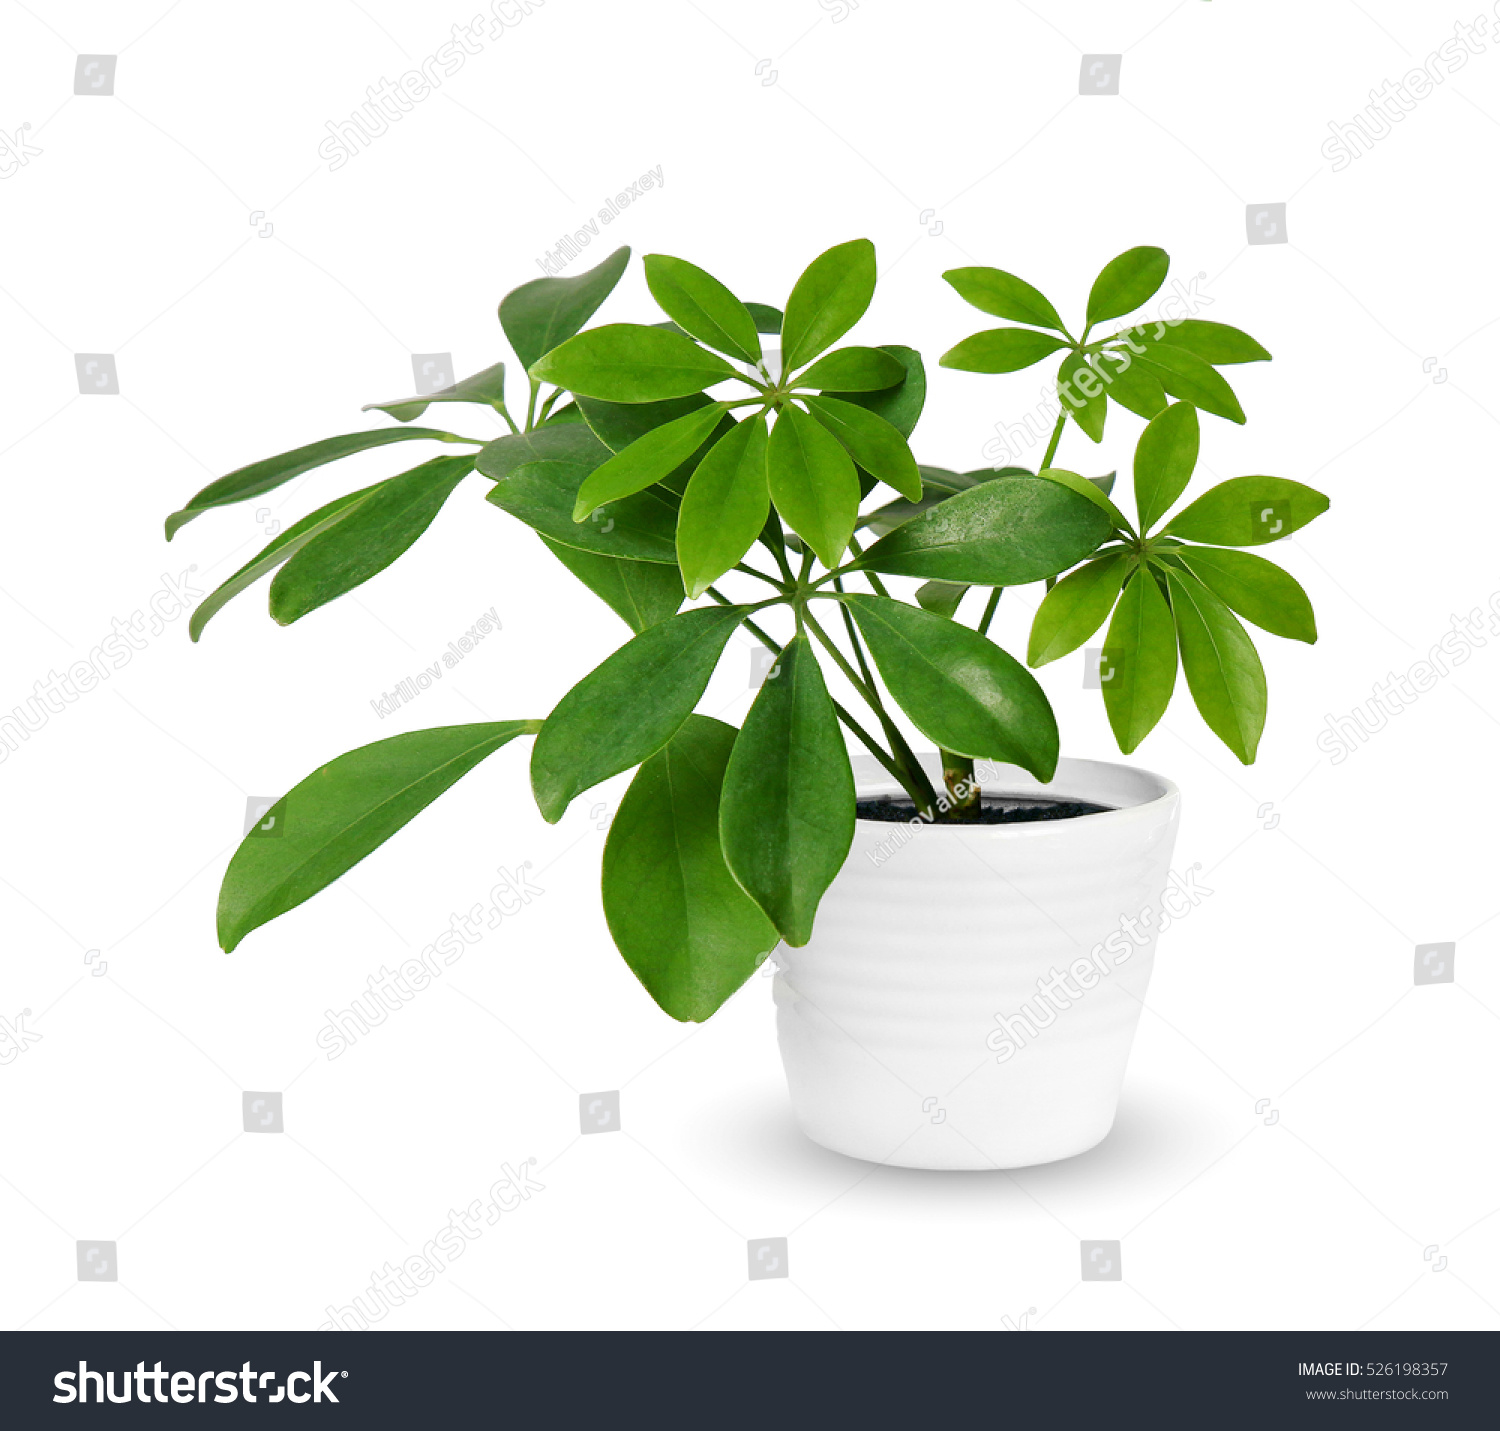 young Schefflera a potted plant isolated over white #526198357